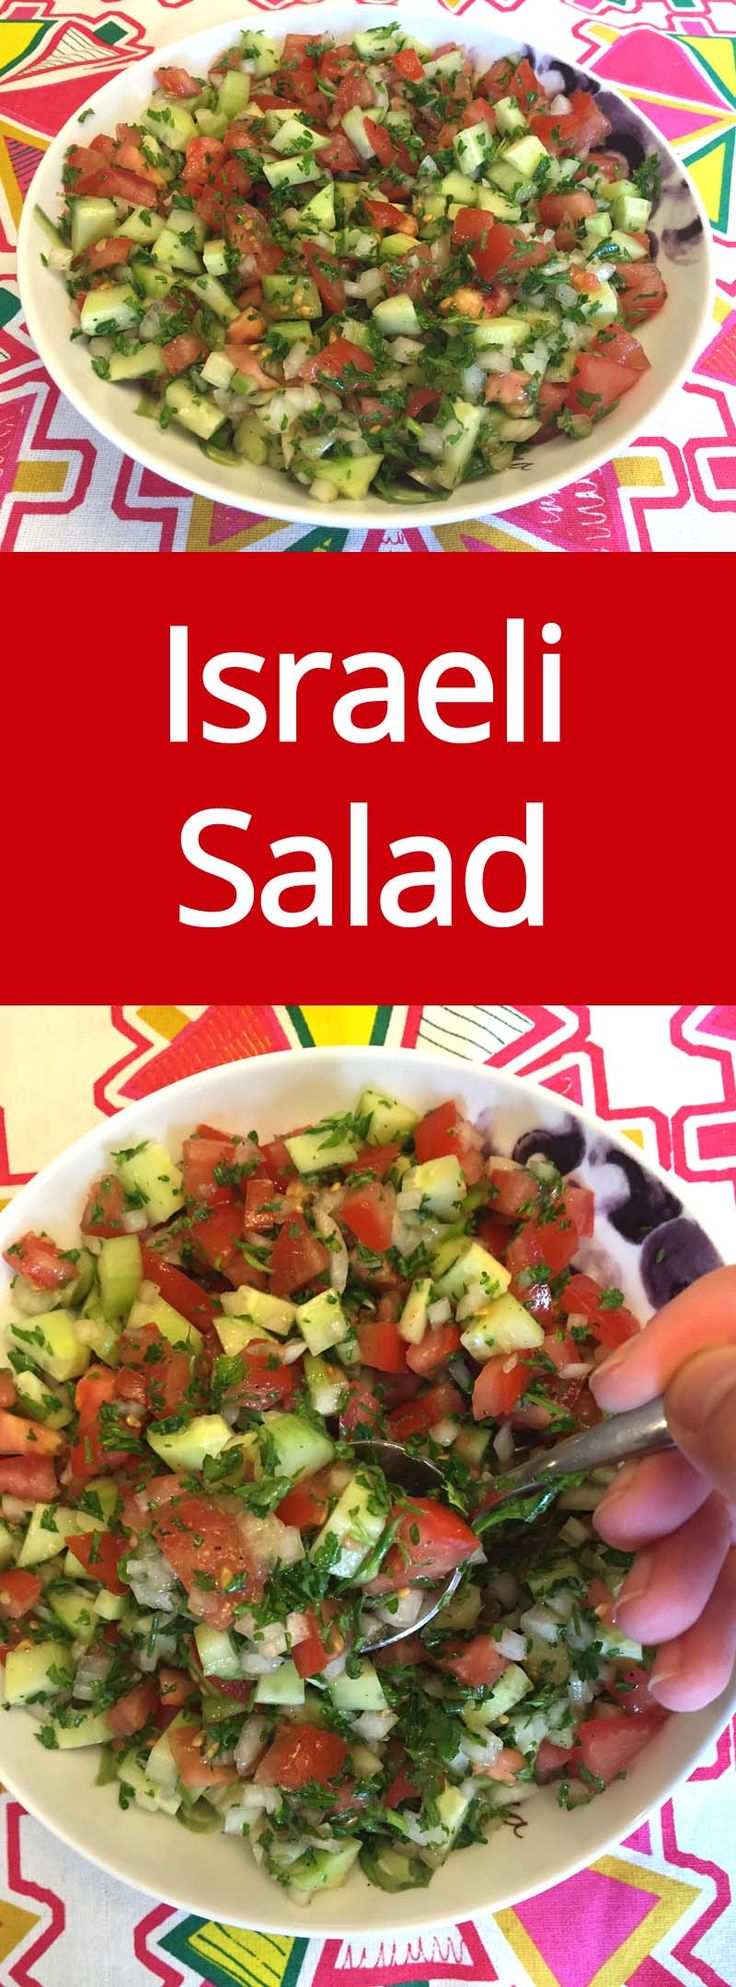 Mejores 141 imgenes de salads en pinterest aderezos para israeli salad recipe with tomatoes cucumber onions and parsley crunchy healthy and forumfinder